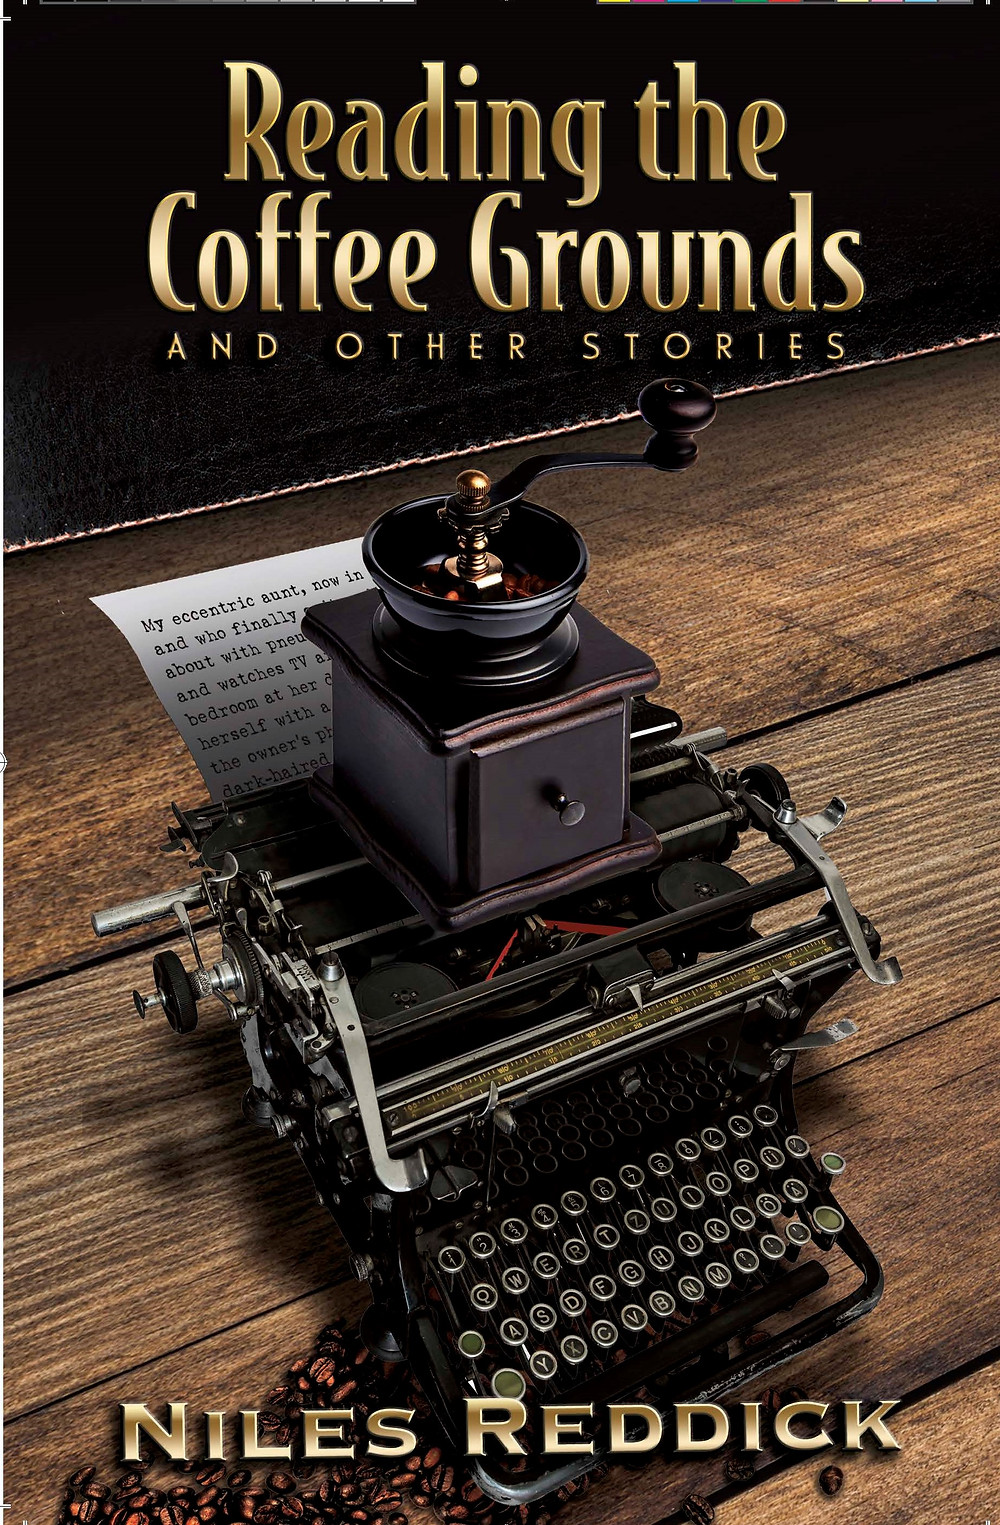 Reading the Coffee Grounds and Other Stories